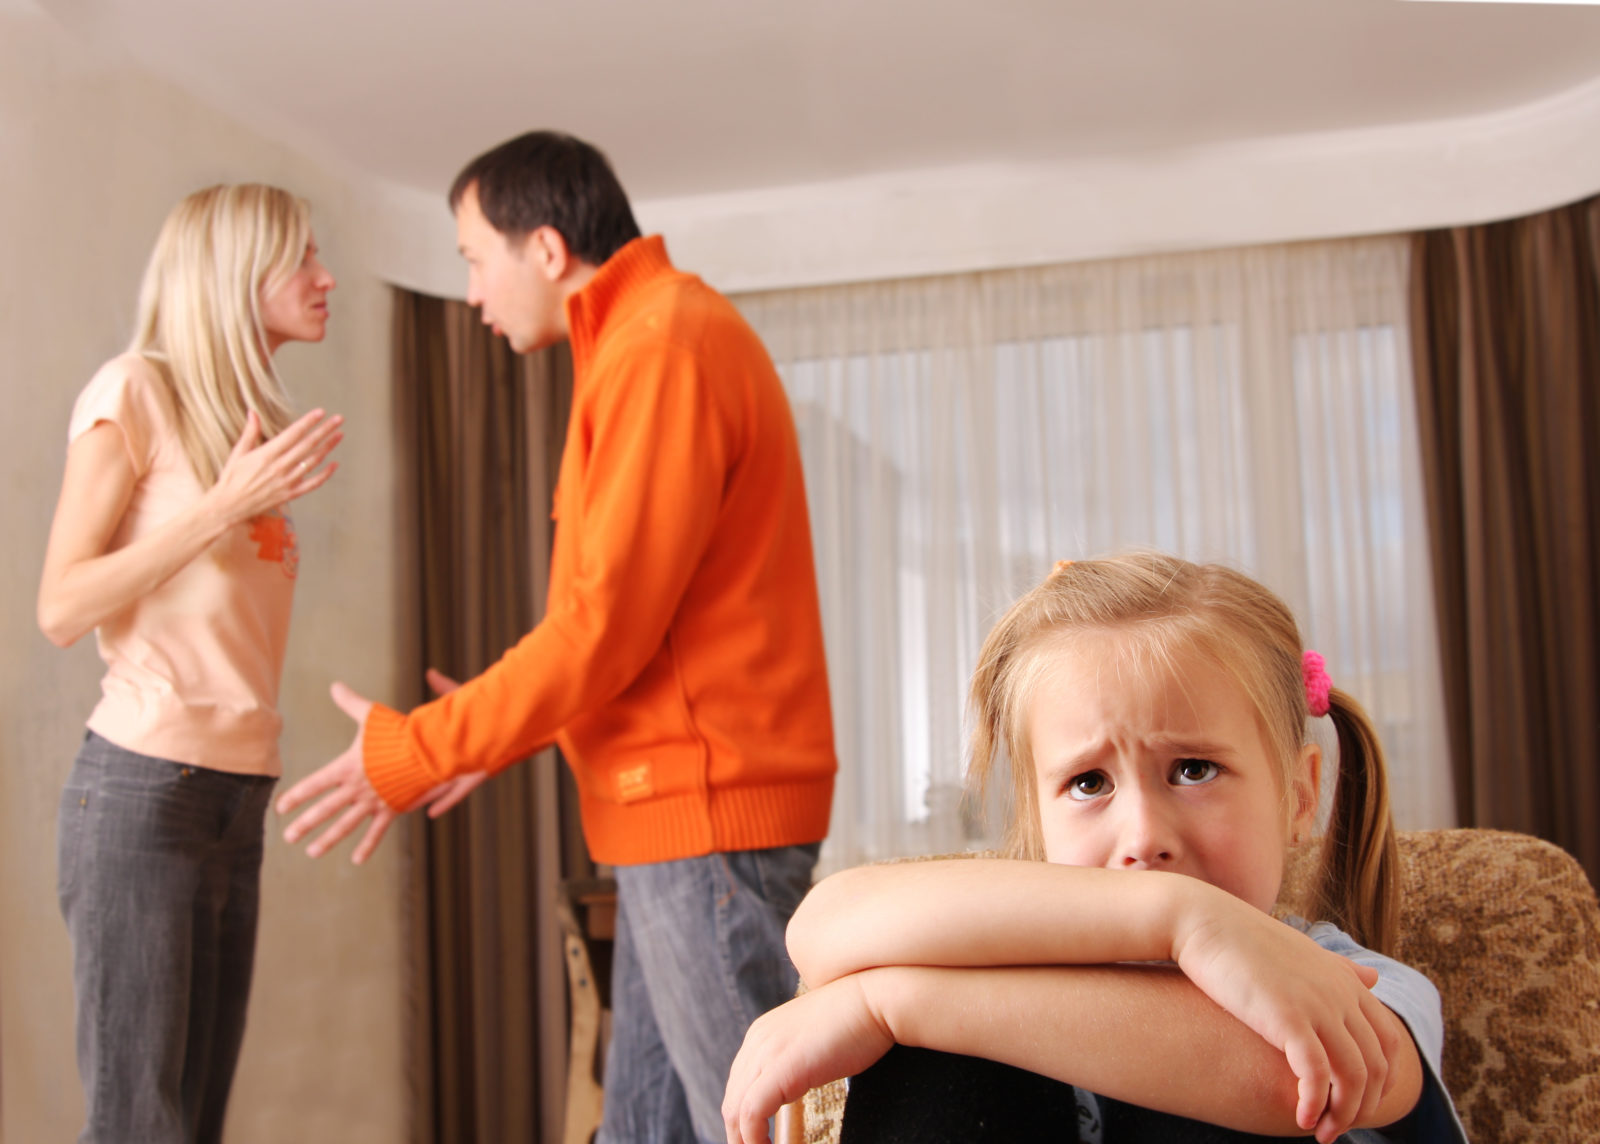 Find Out What to Do When Parenting Styles Clash at Butterfly Beginnings Counseling in Davenport, IA